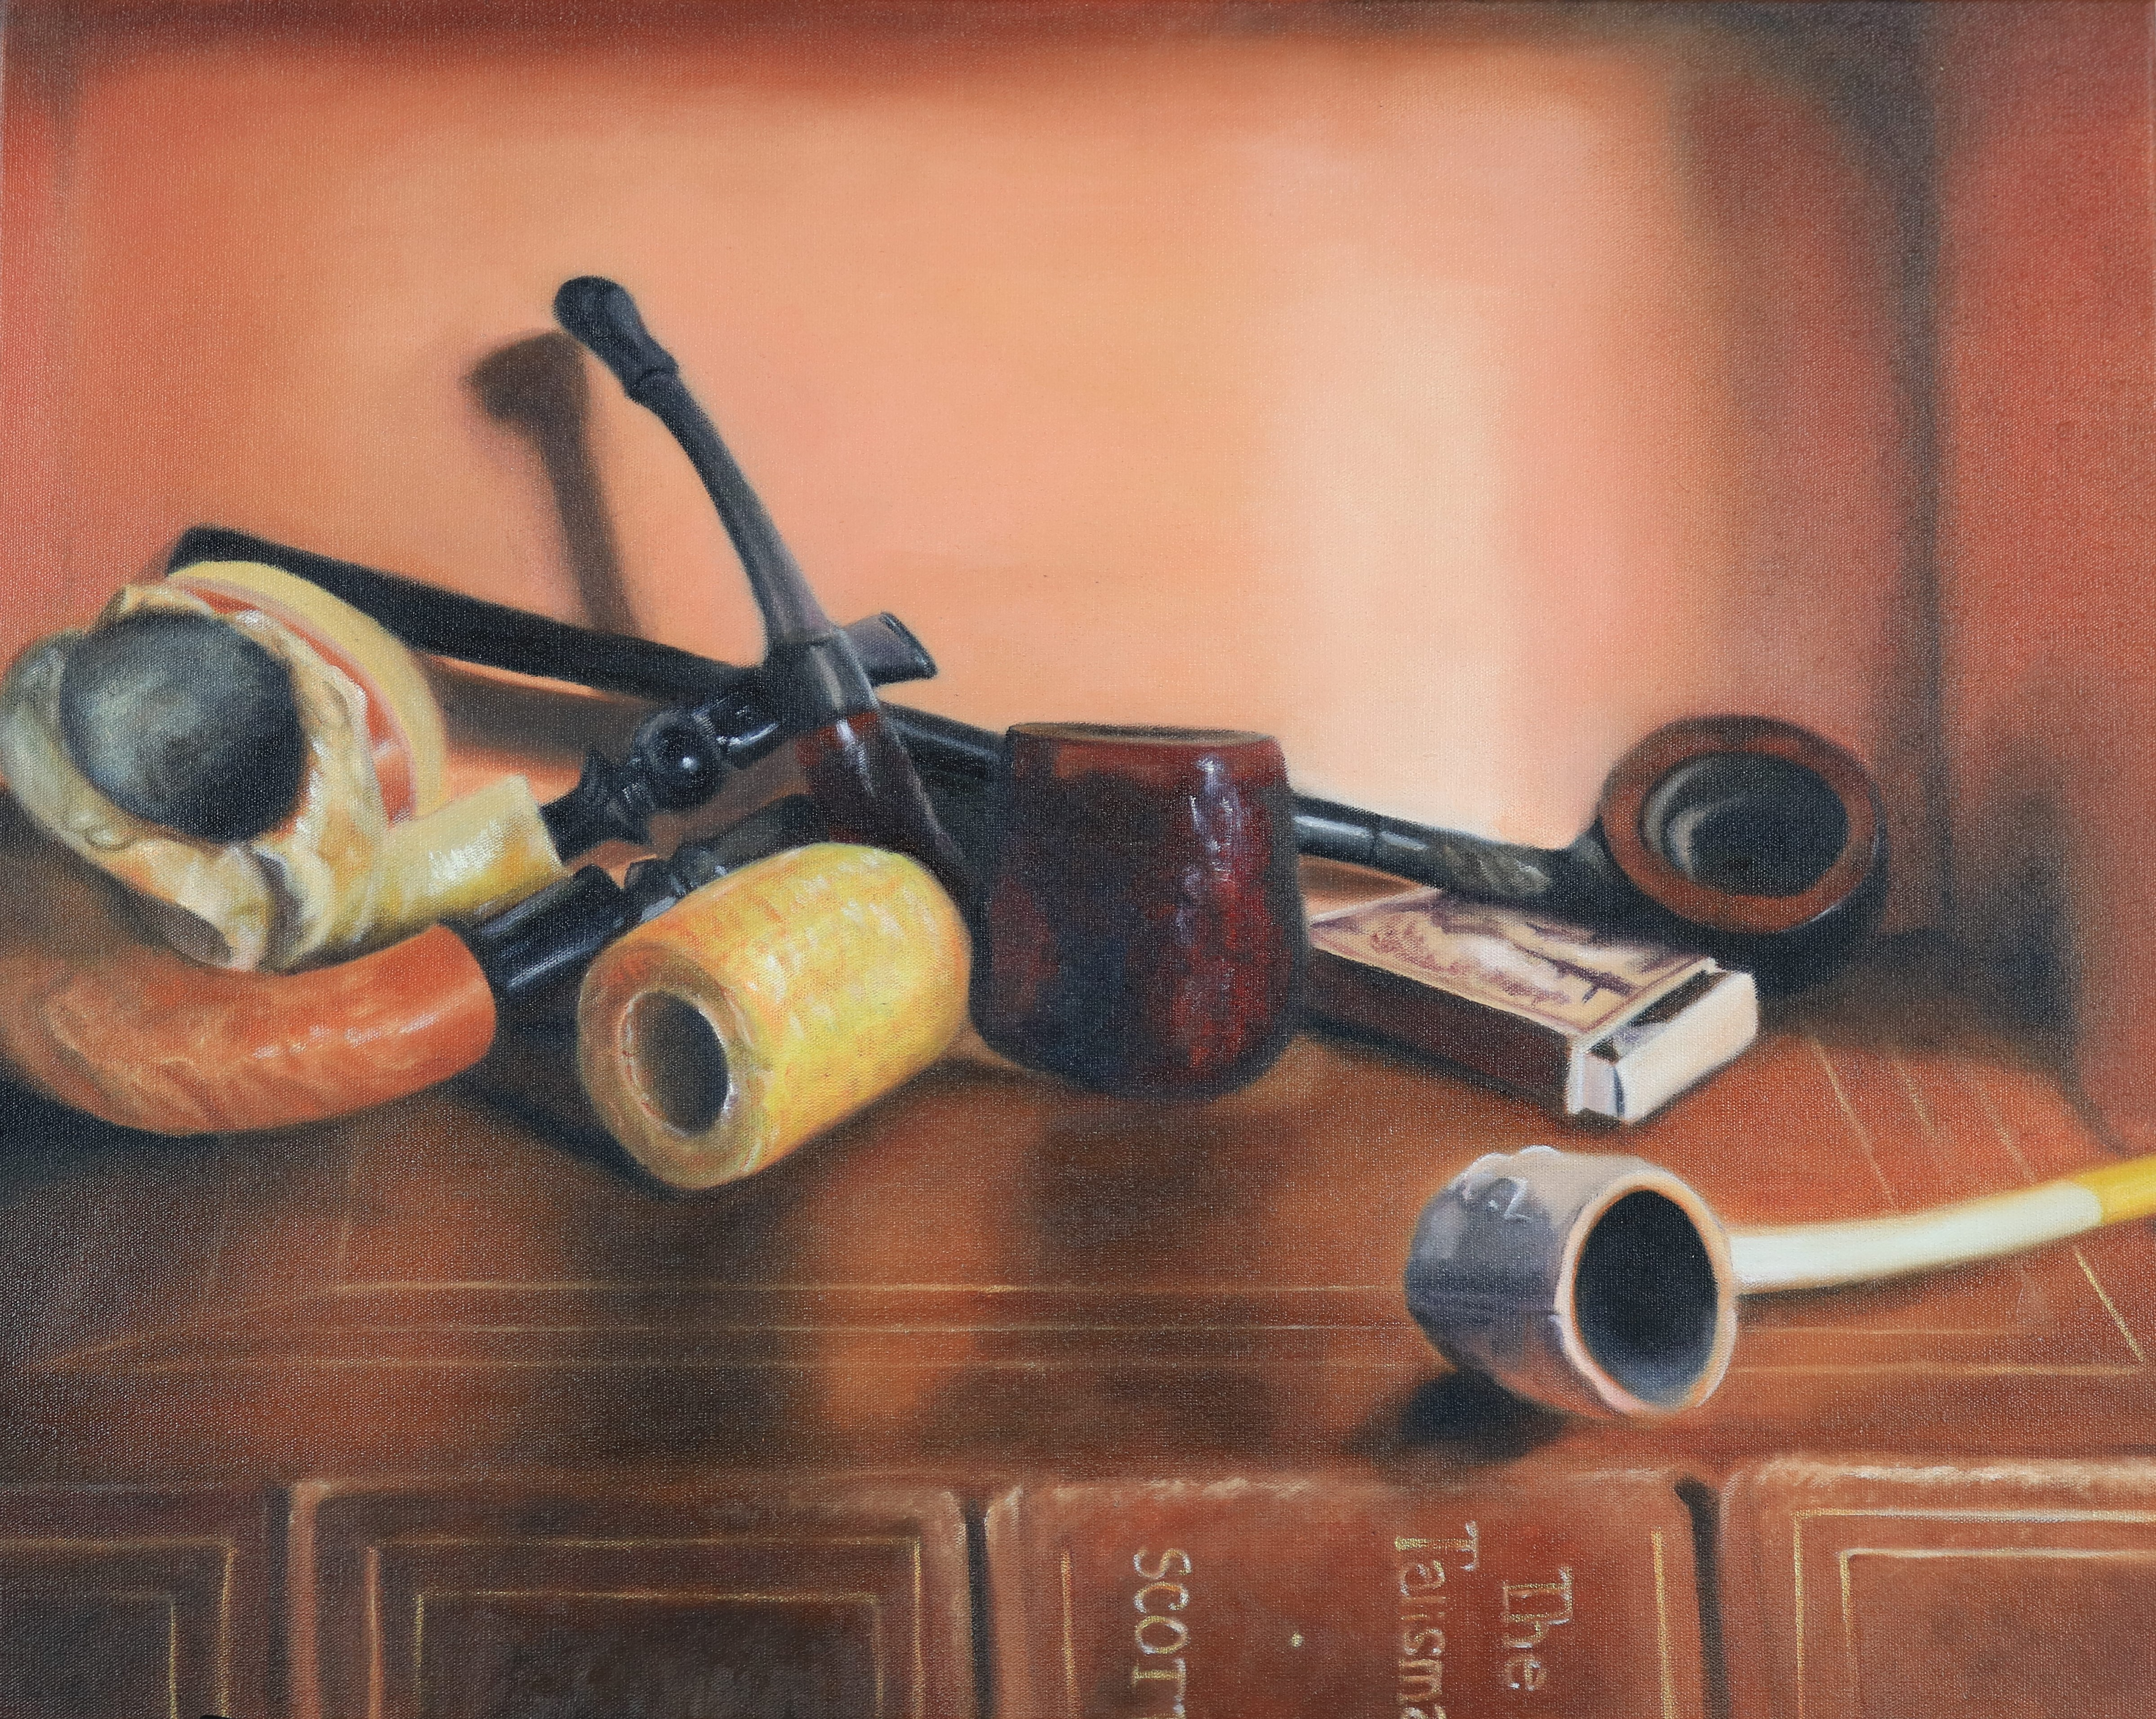 Ruth Rea, With Pipe and Book, Oil on Canvas, Fall 2019, 16 x 20